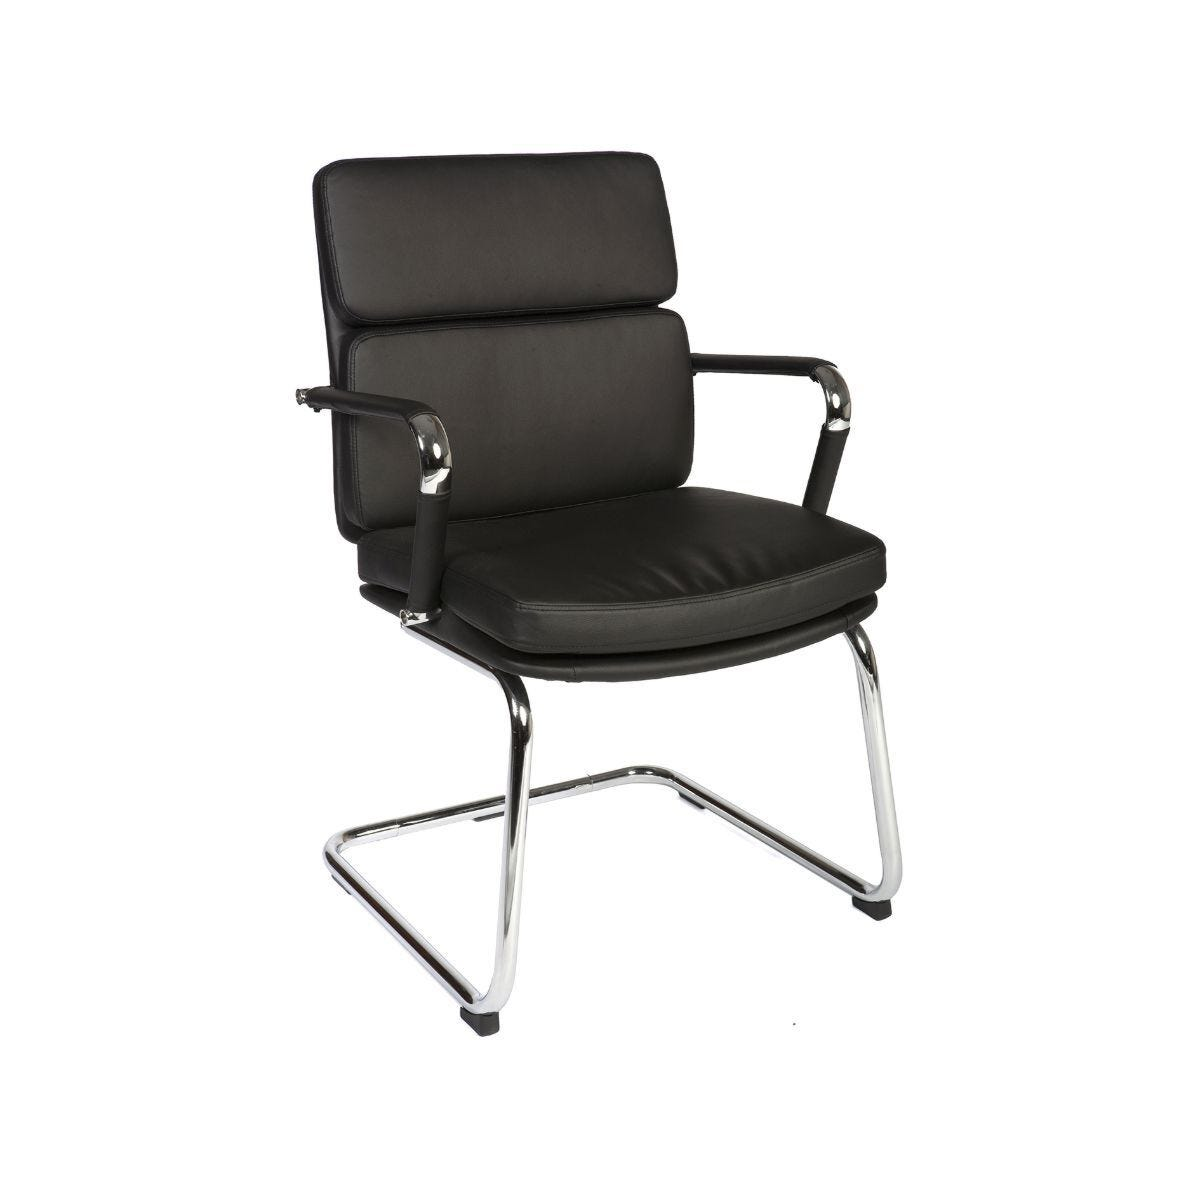 Teknik Office Deco Visitor Retro Style Visitors Chair Black